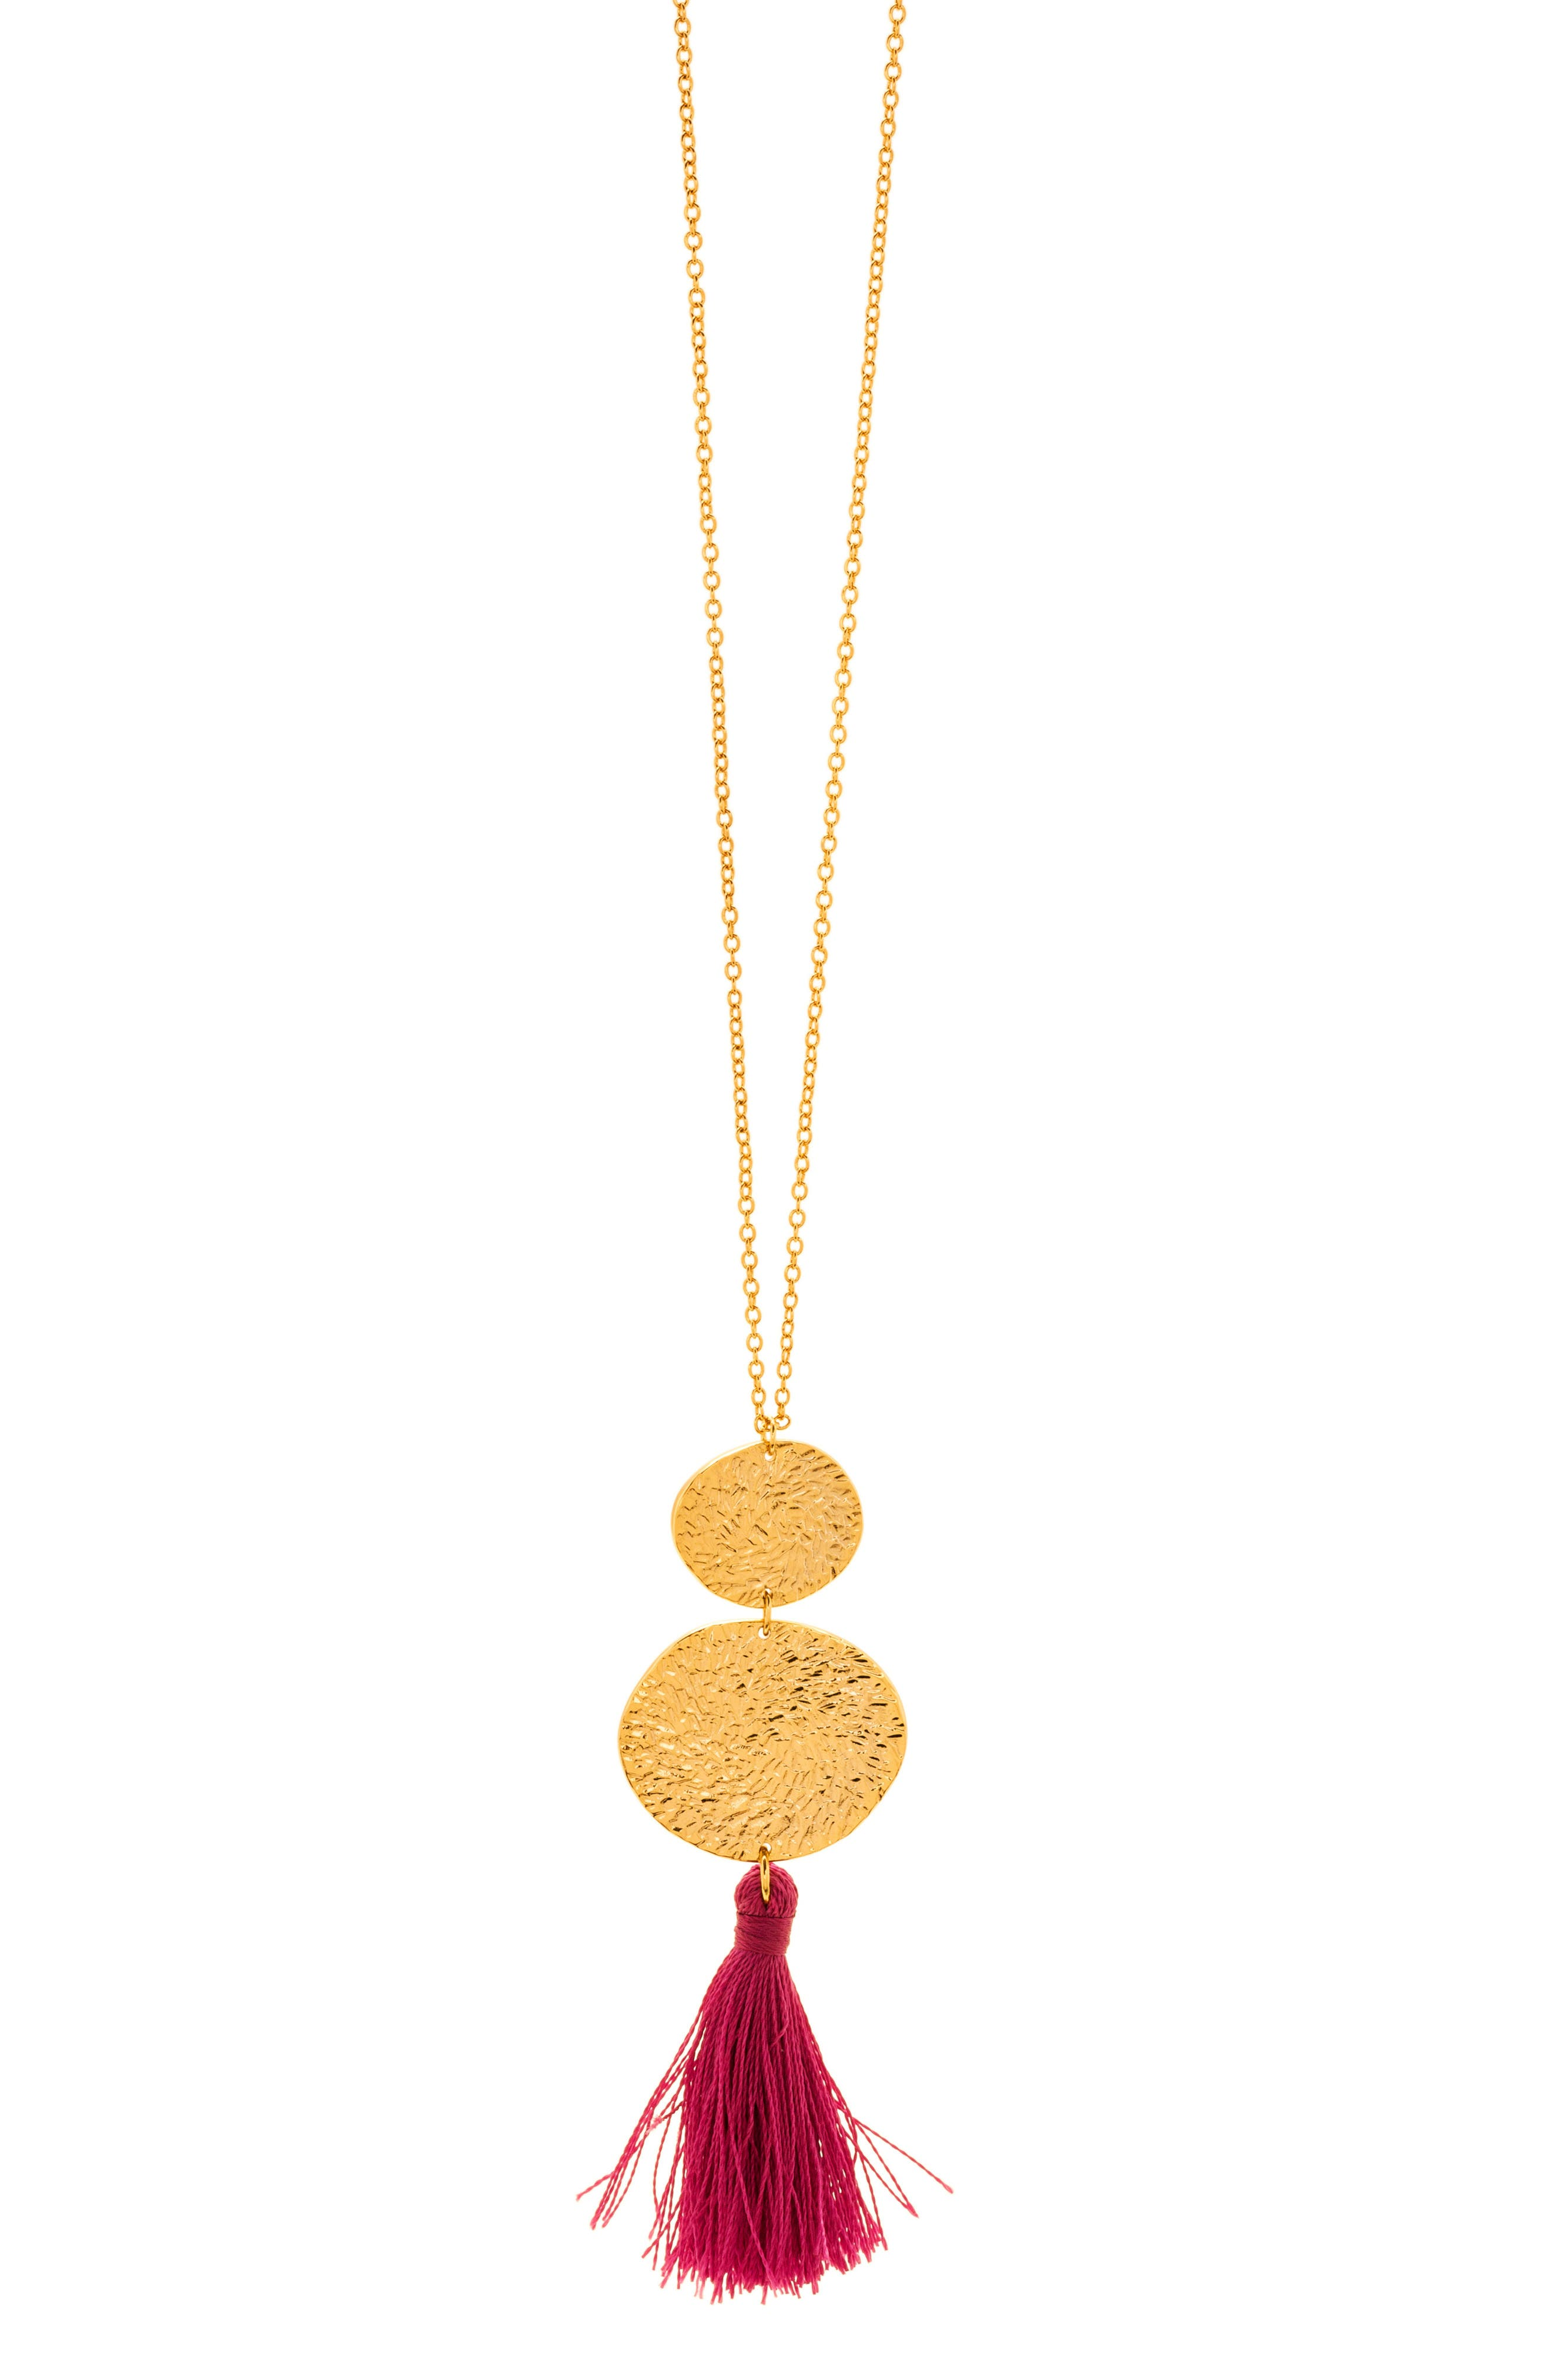 Phoenix Pendant Necklace,                             Alternate thumbnail 2, color,                             Berry/Gold